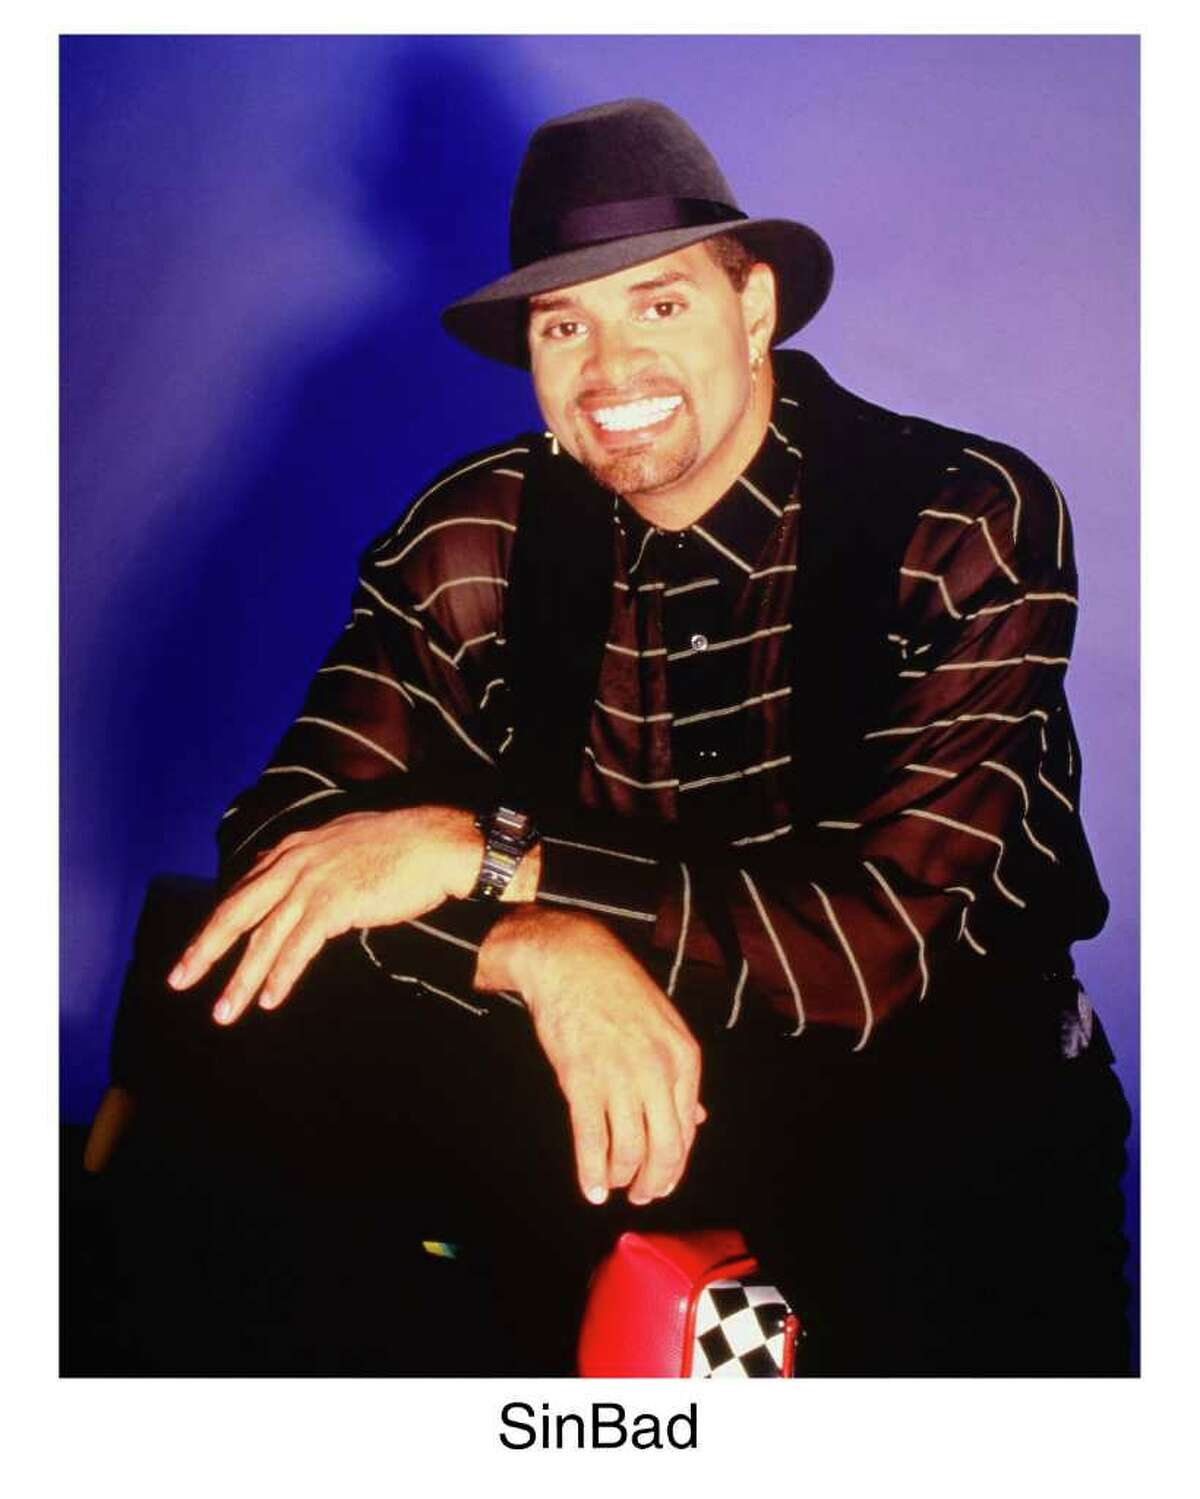 Sinbad, named by Comedy Central one of the top 100 comedians of all time, will be performing at Harrah's.